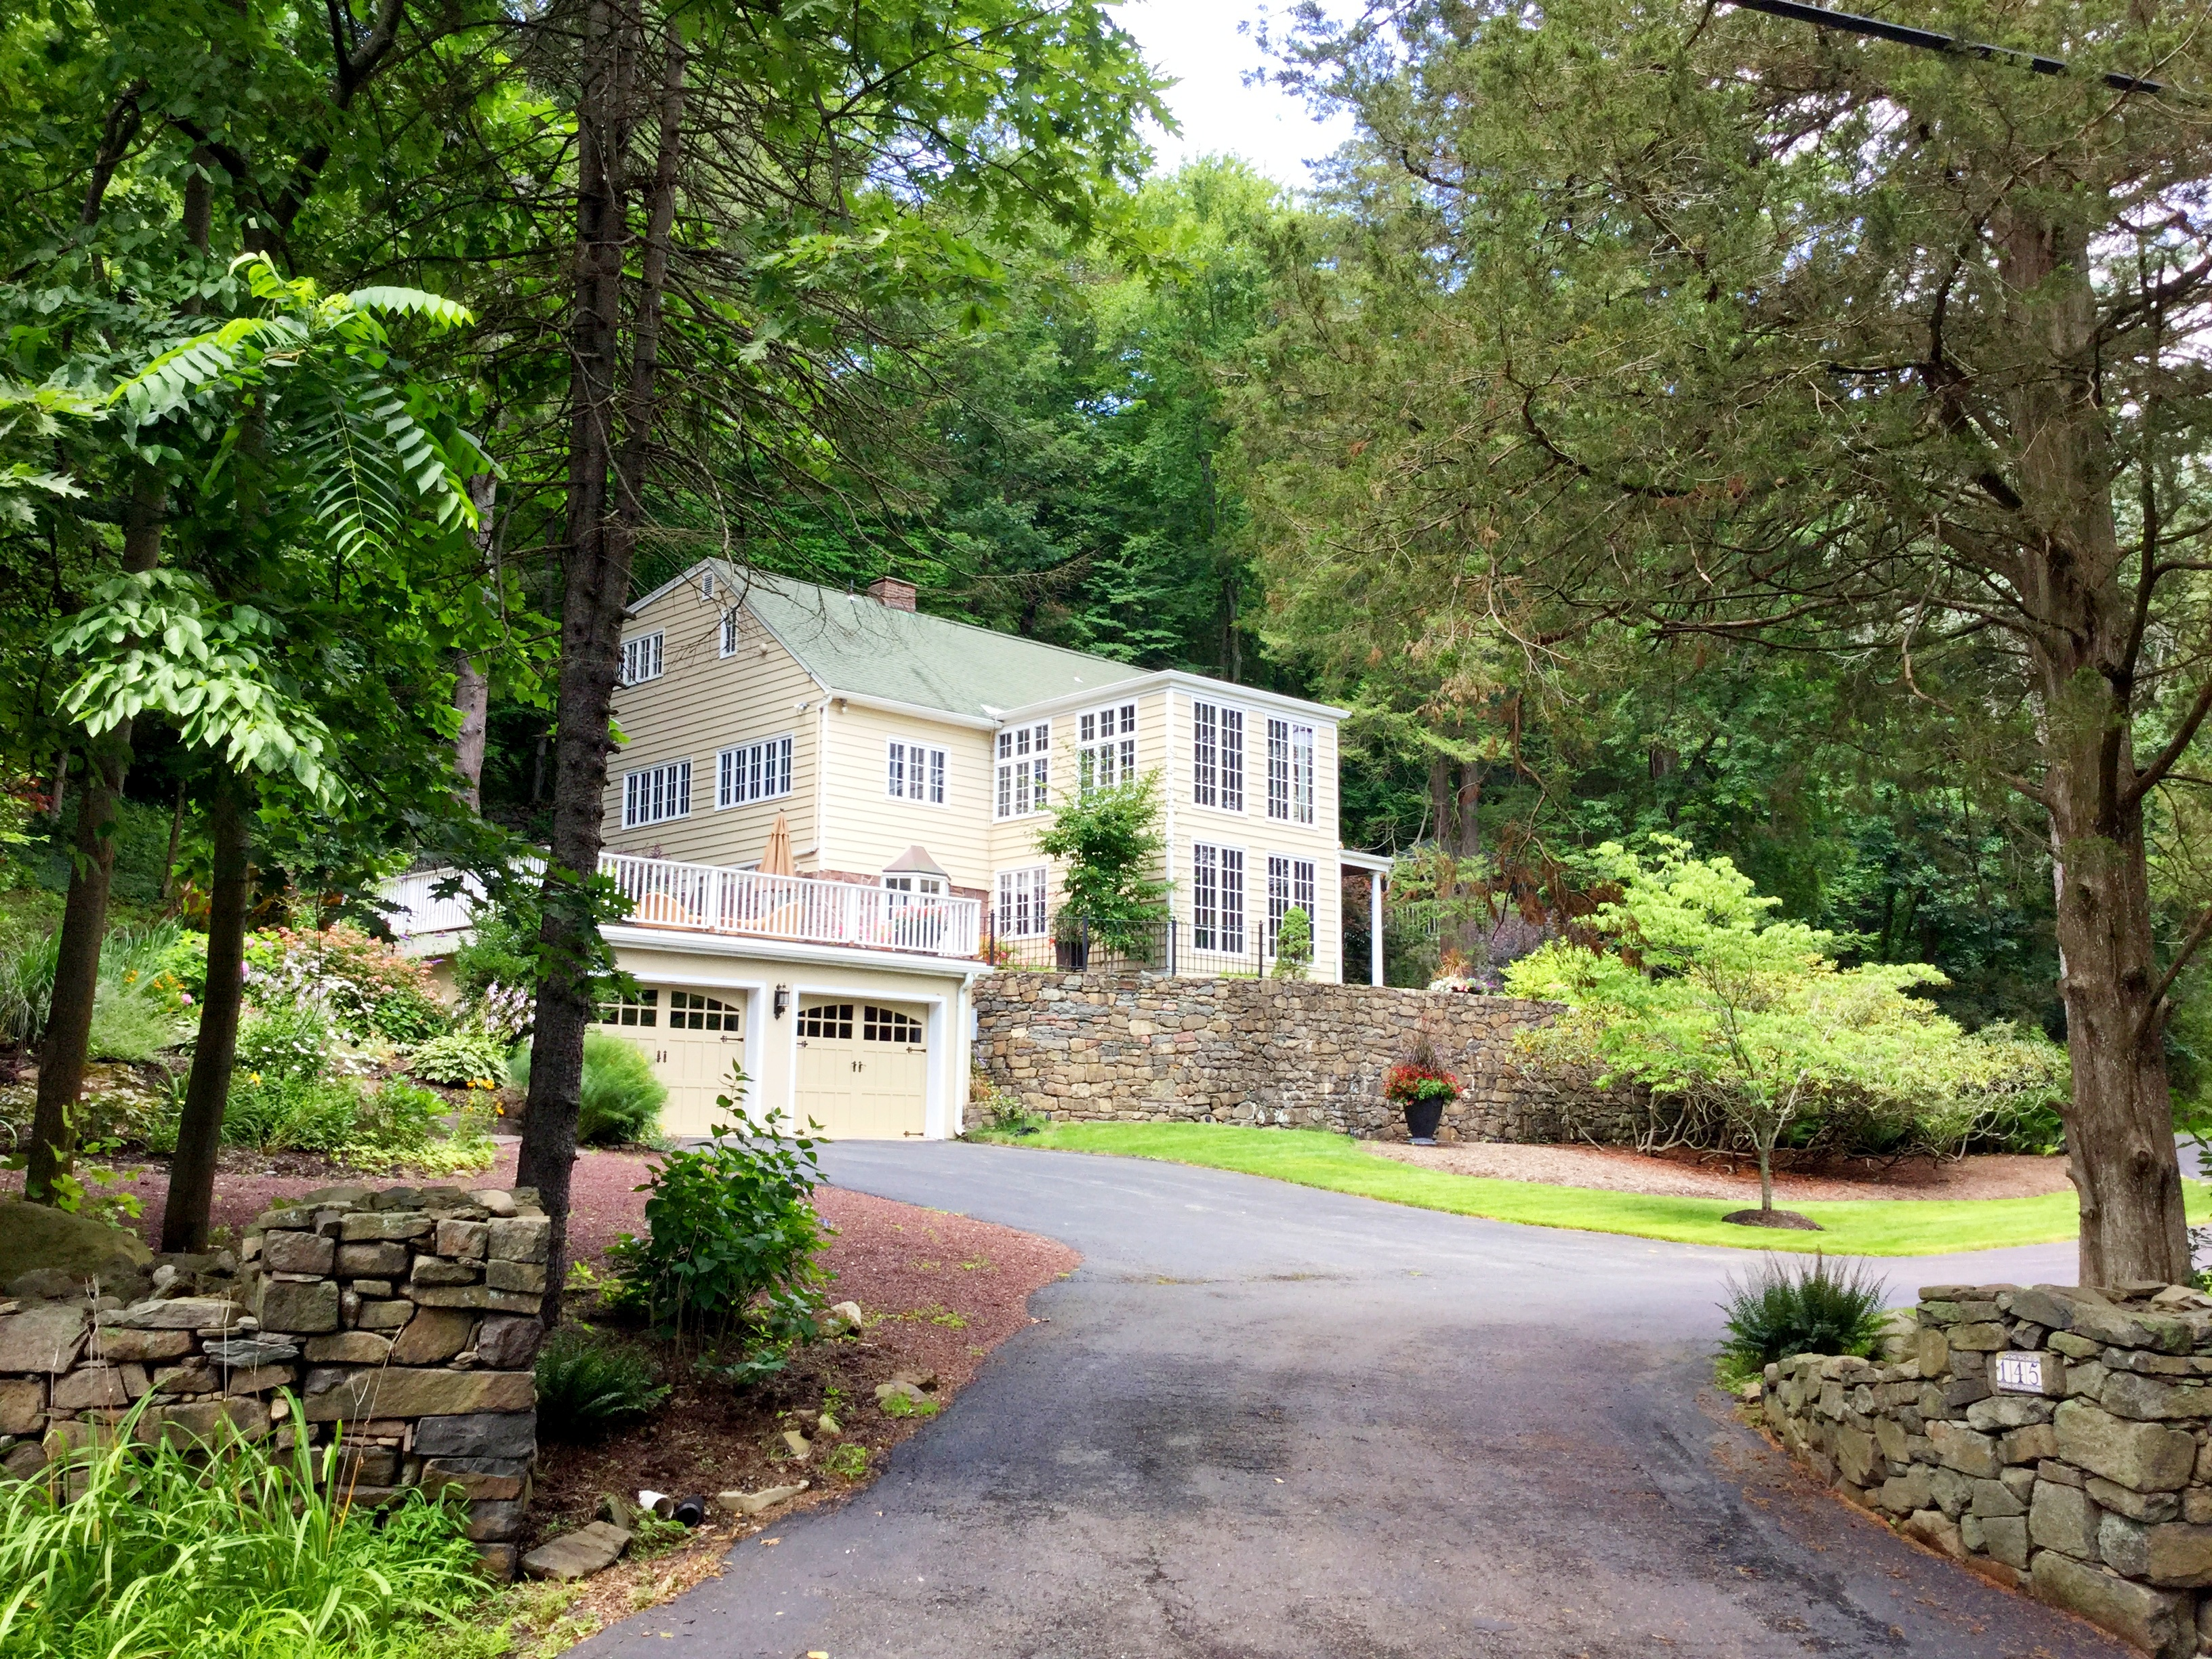 Single Family Home for Sale at Extraordinary Country Home 145 South Mountain Rd. New City, New York 10956 United States